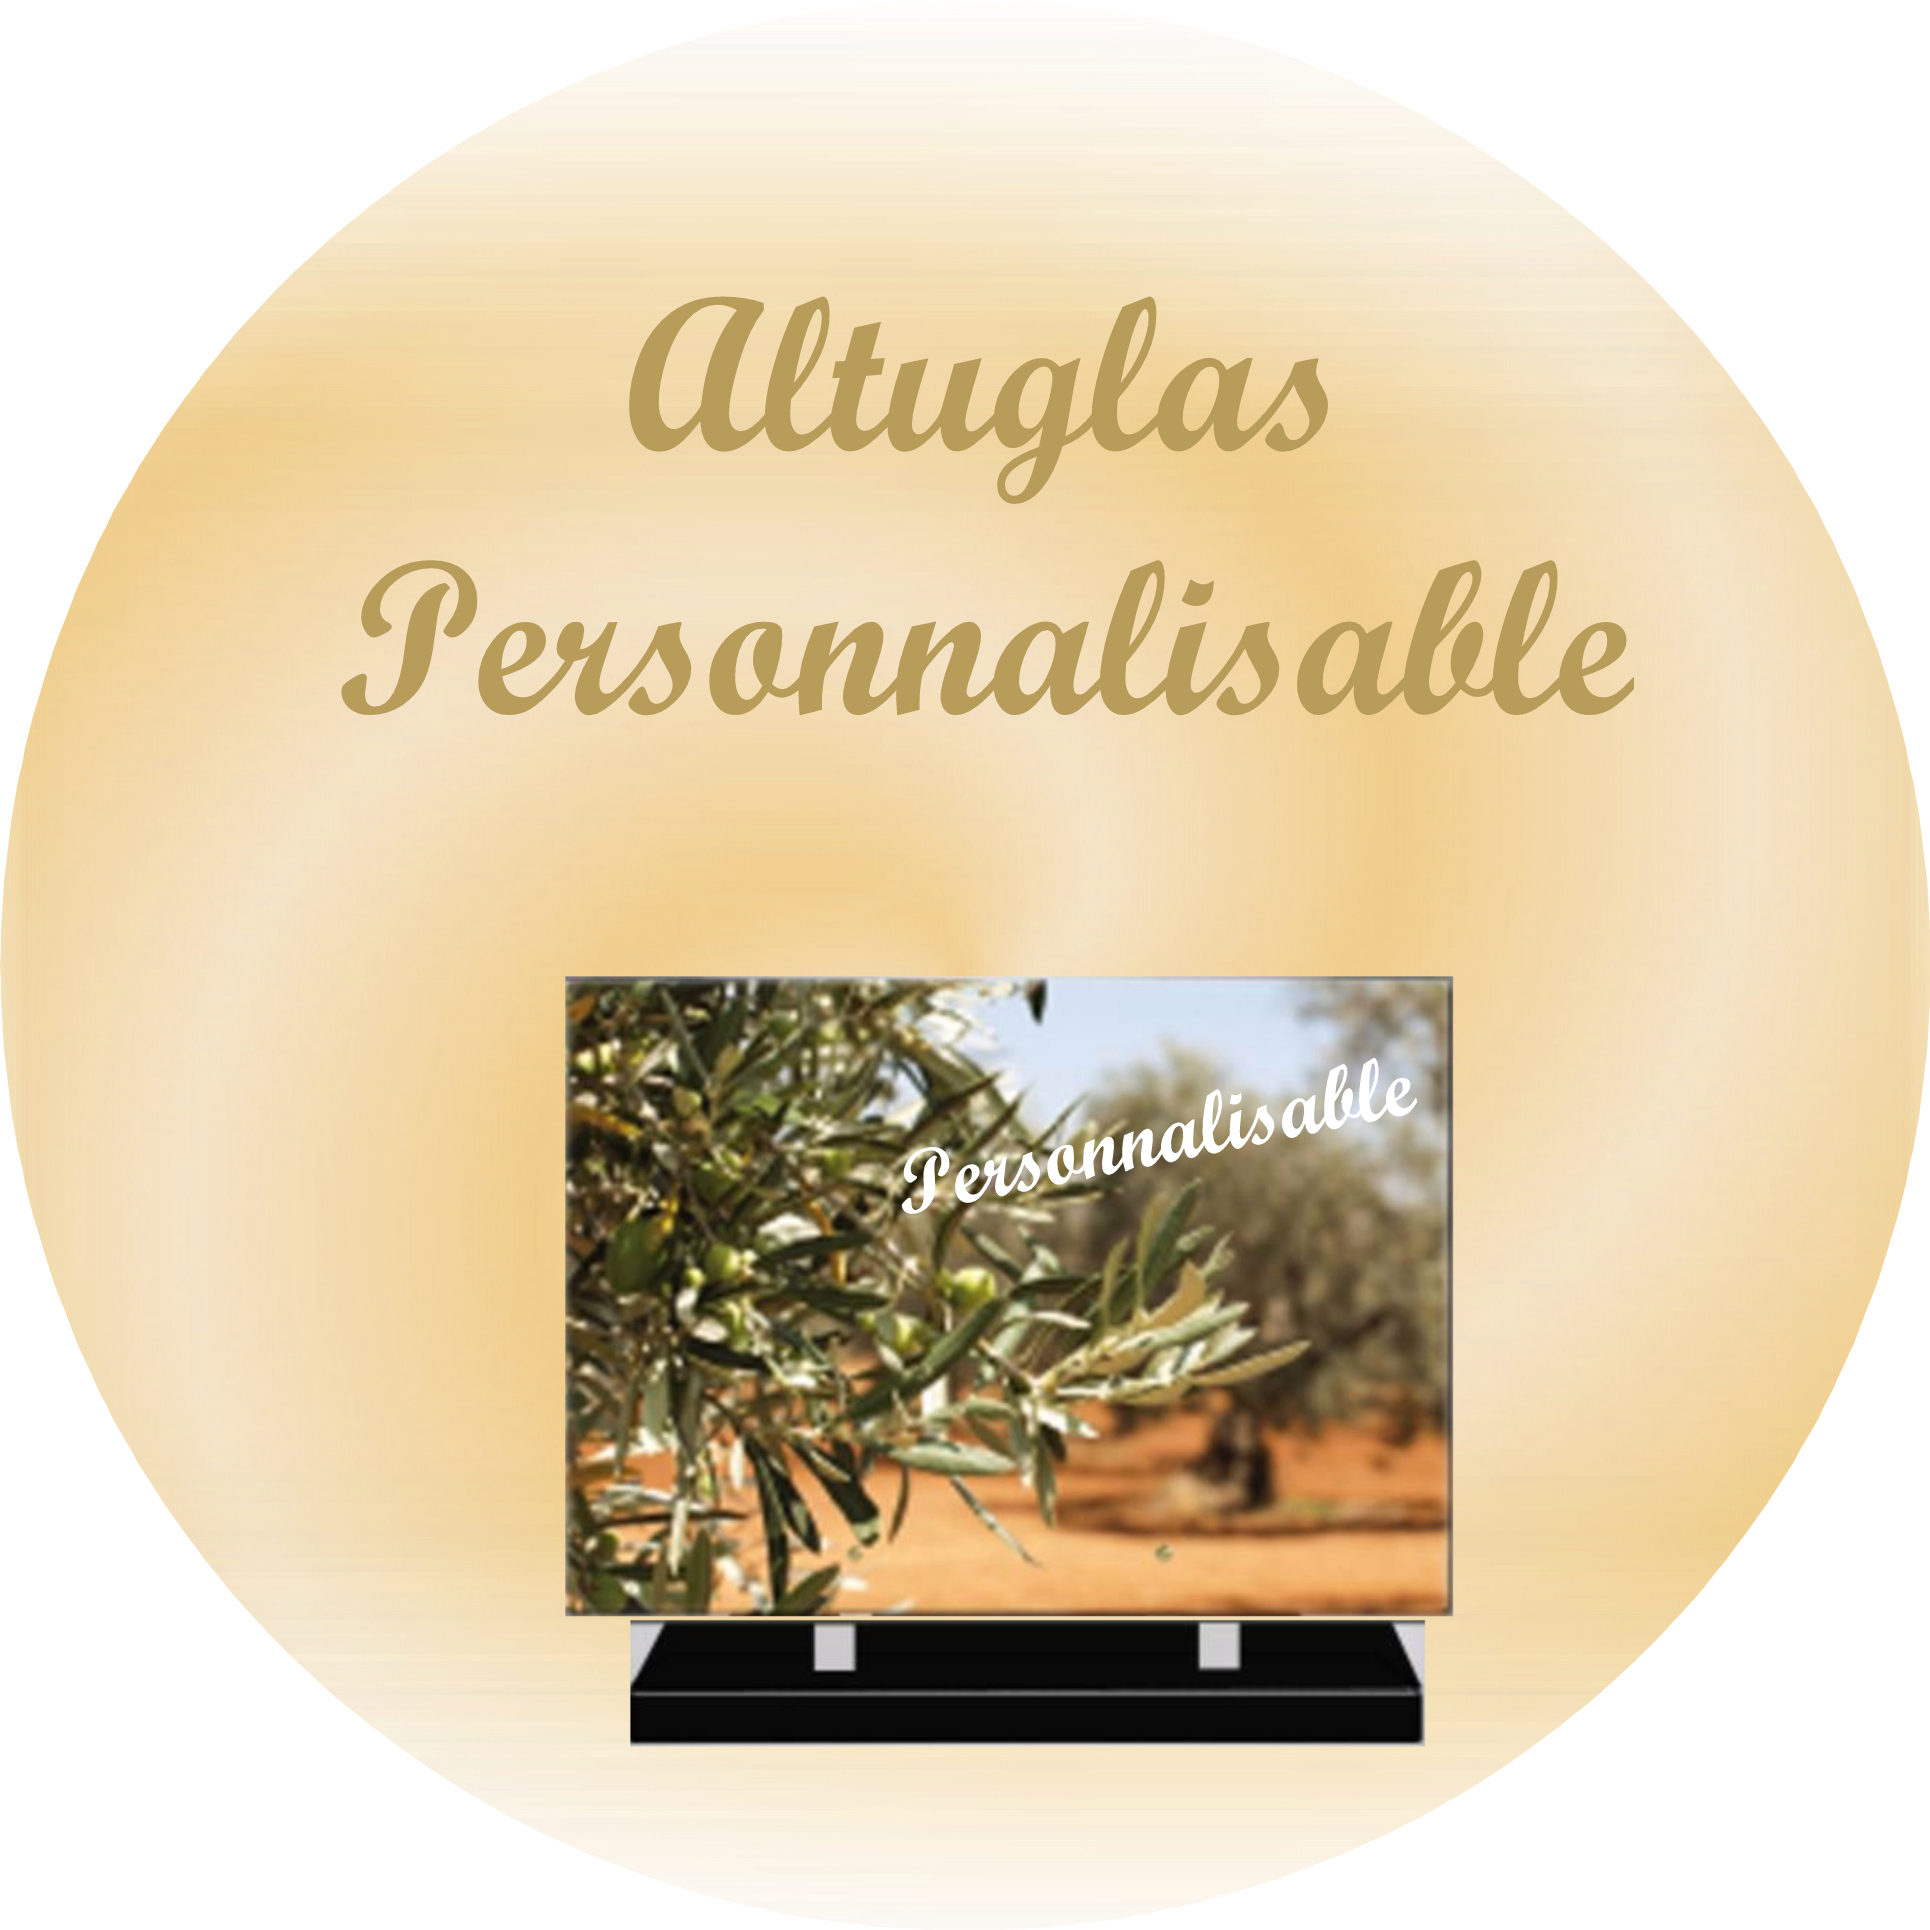 PLAQUES FUNERAIRES MODERNES PERSONNALISABLES RECTANGLE NICE